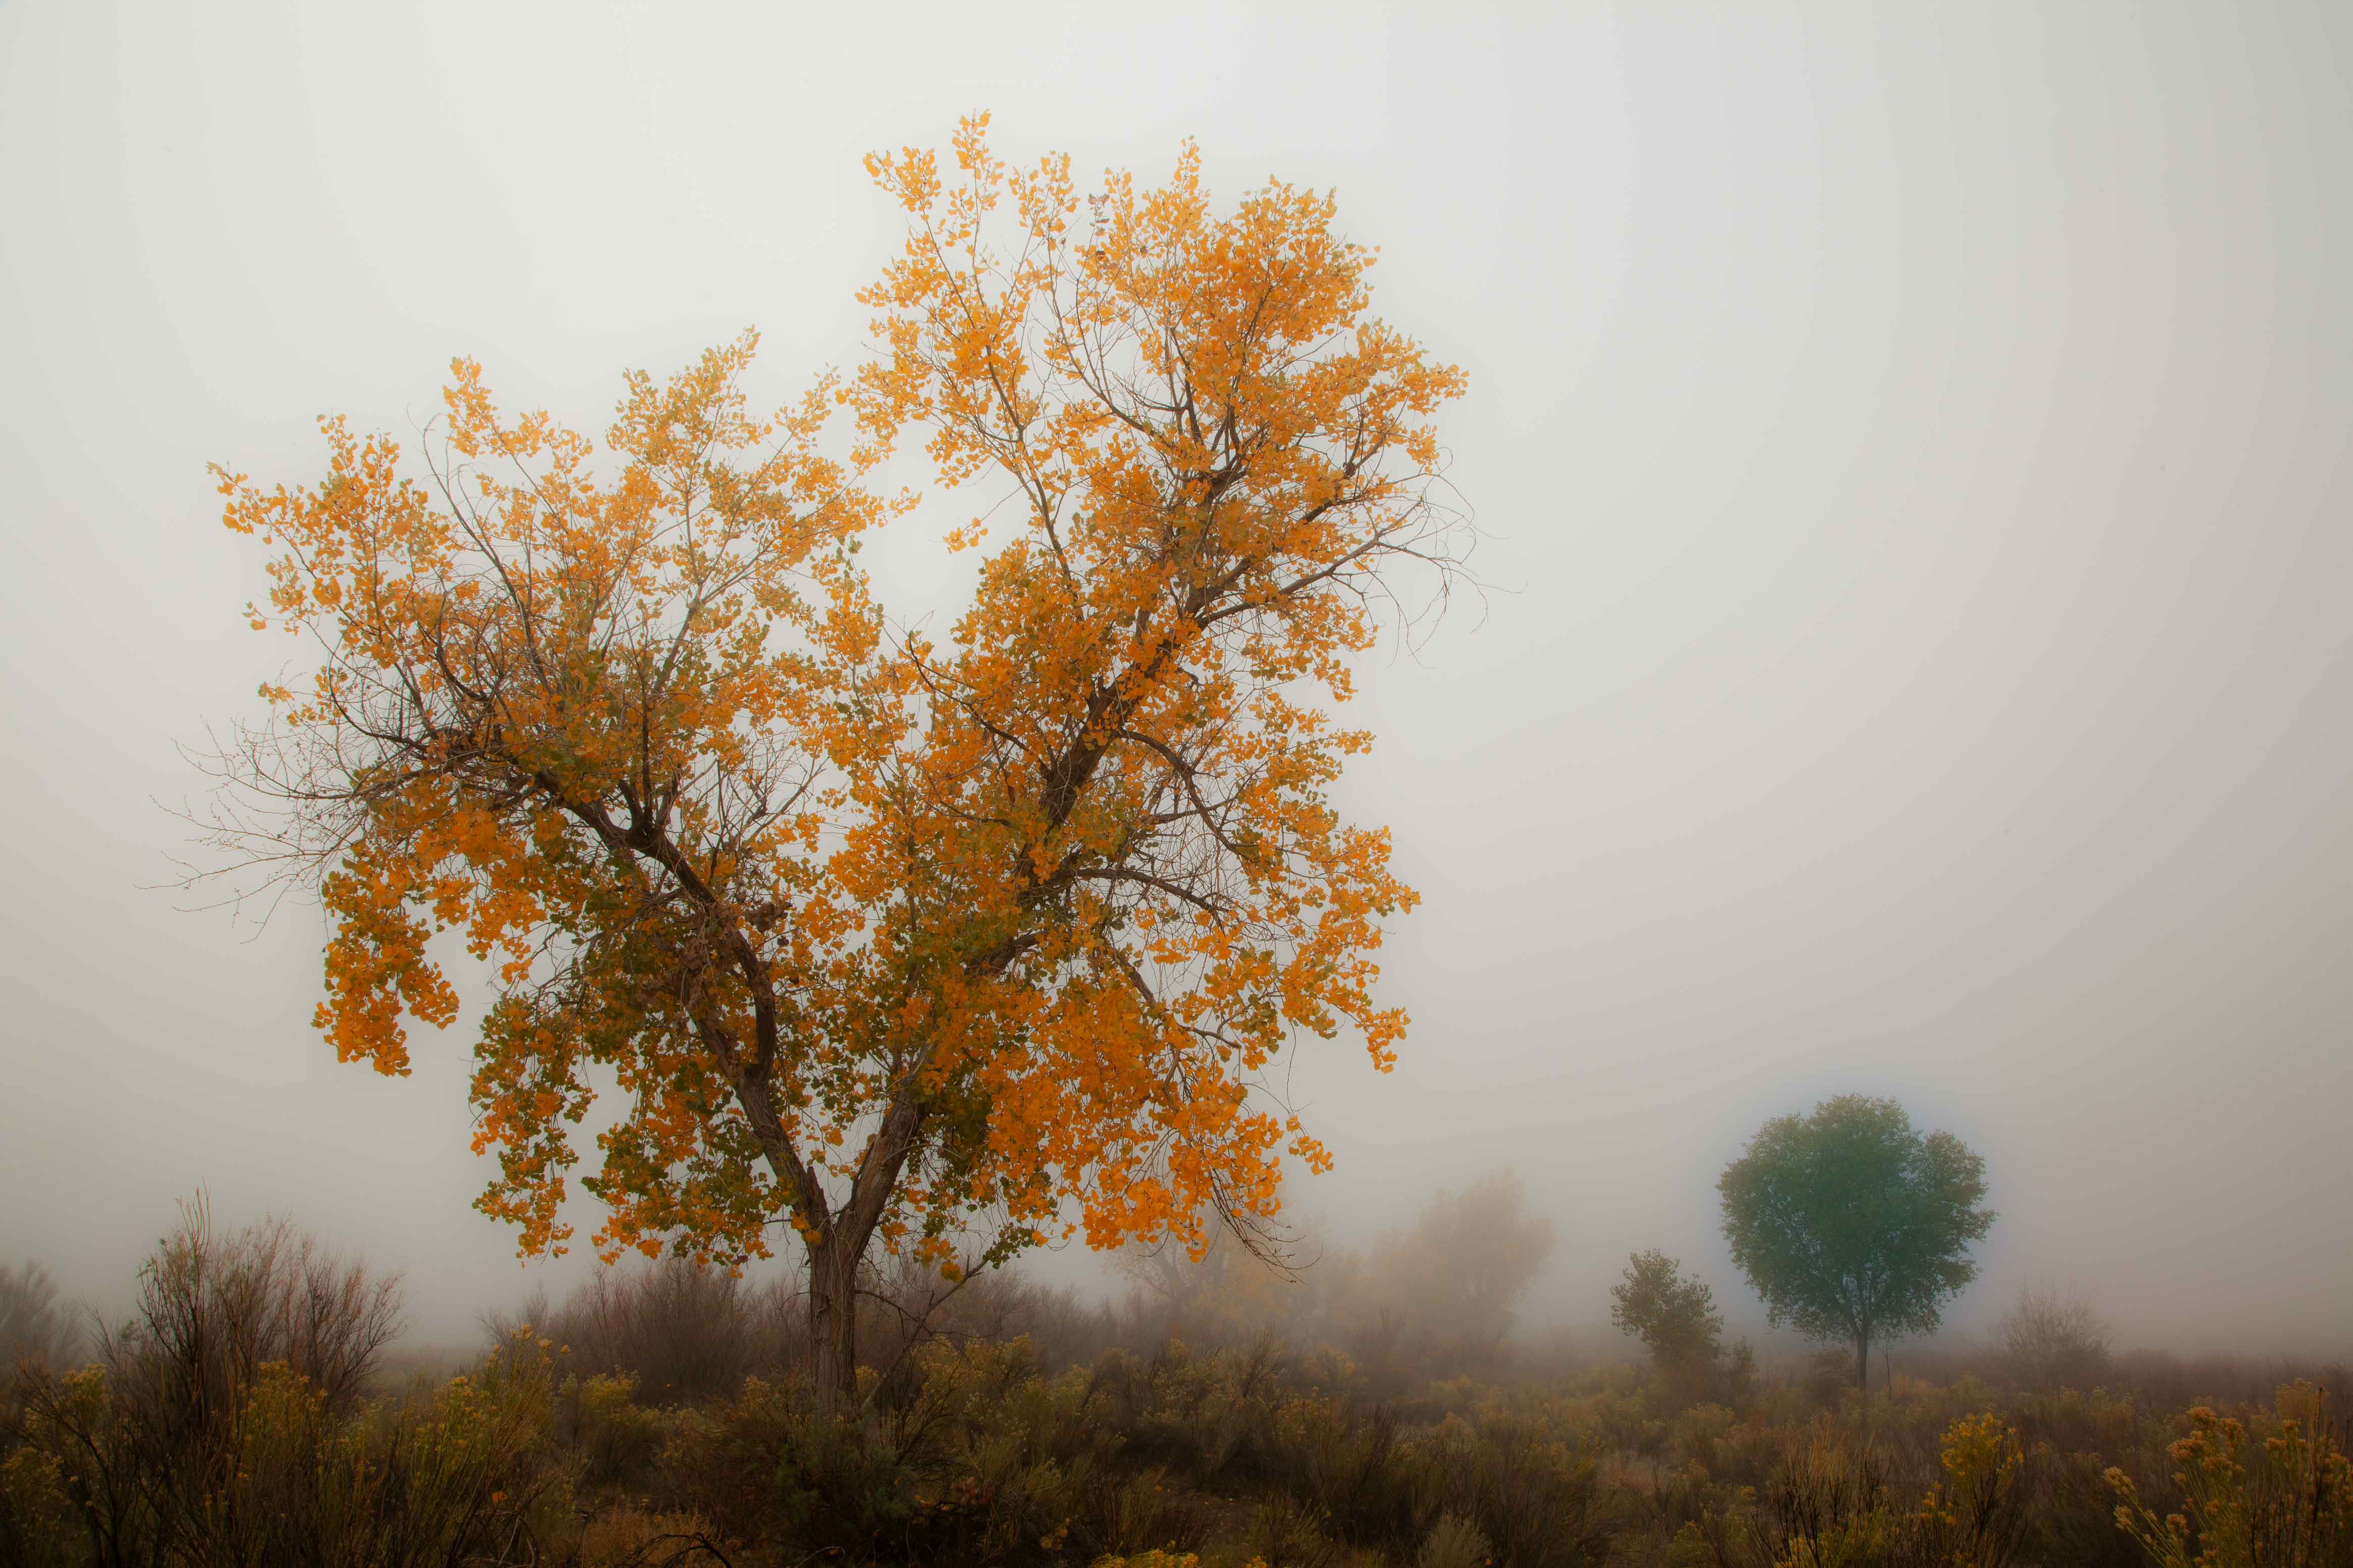 Autumn trees along the Puerco River, northern Arizona